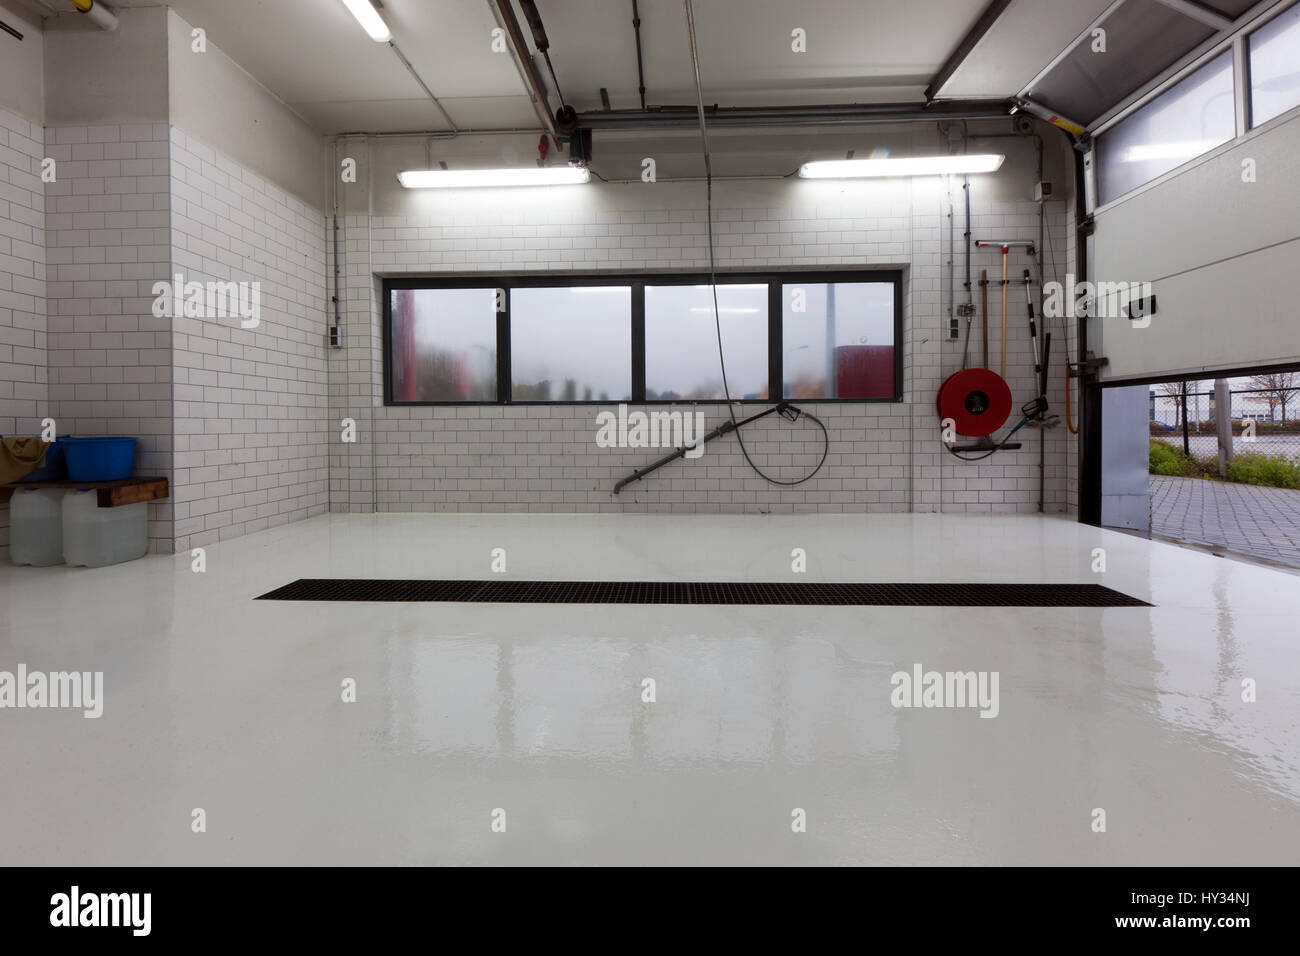 https www alamy com stock photo an empty indoor luxurious car wash with a high pressure washer 137137886 html